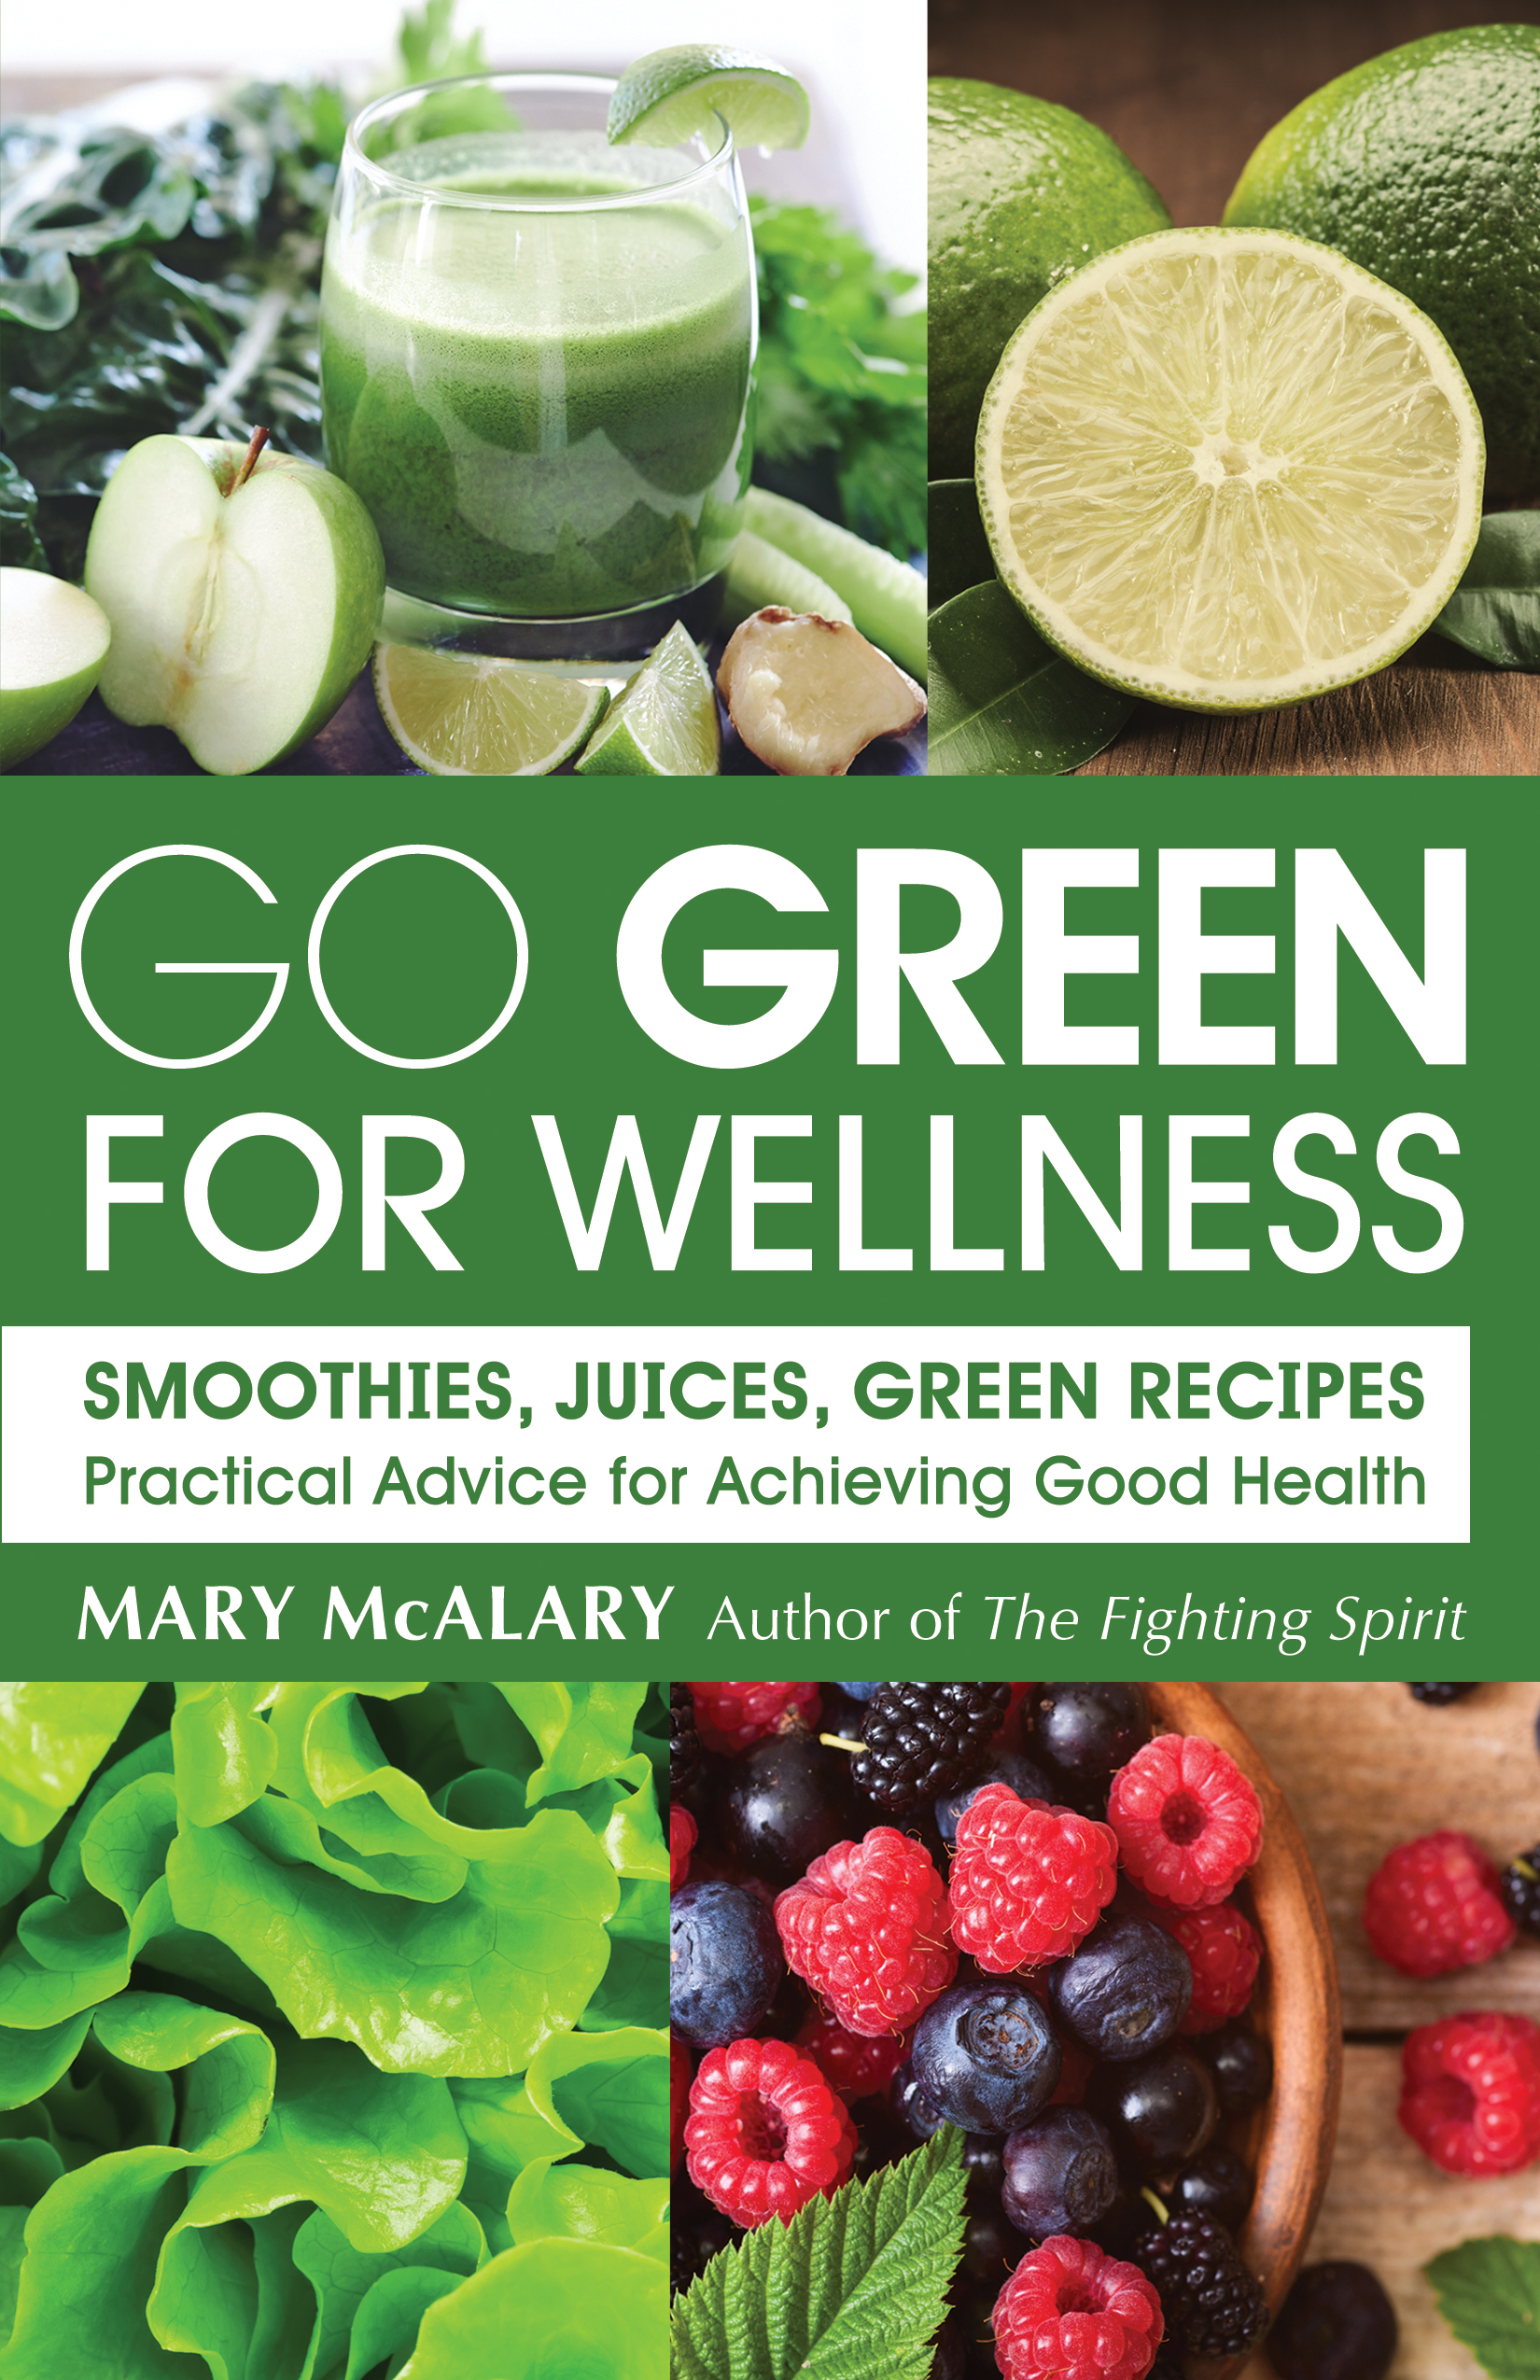 Go Green For Wellness Front Cover.jpg